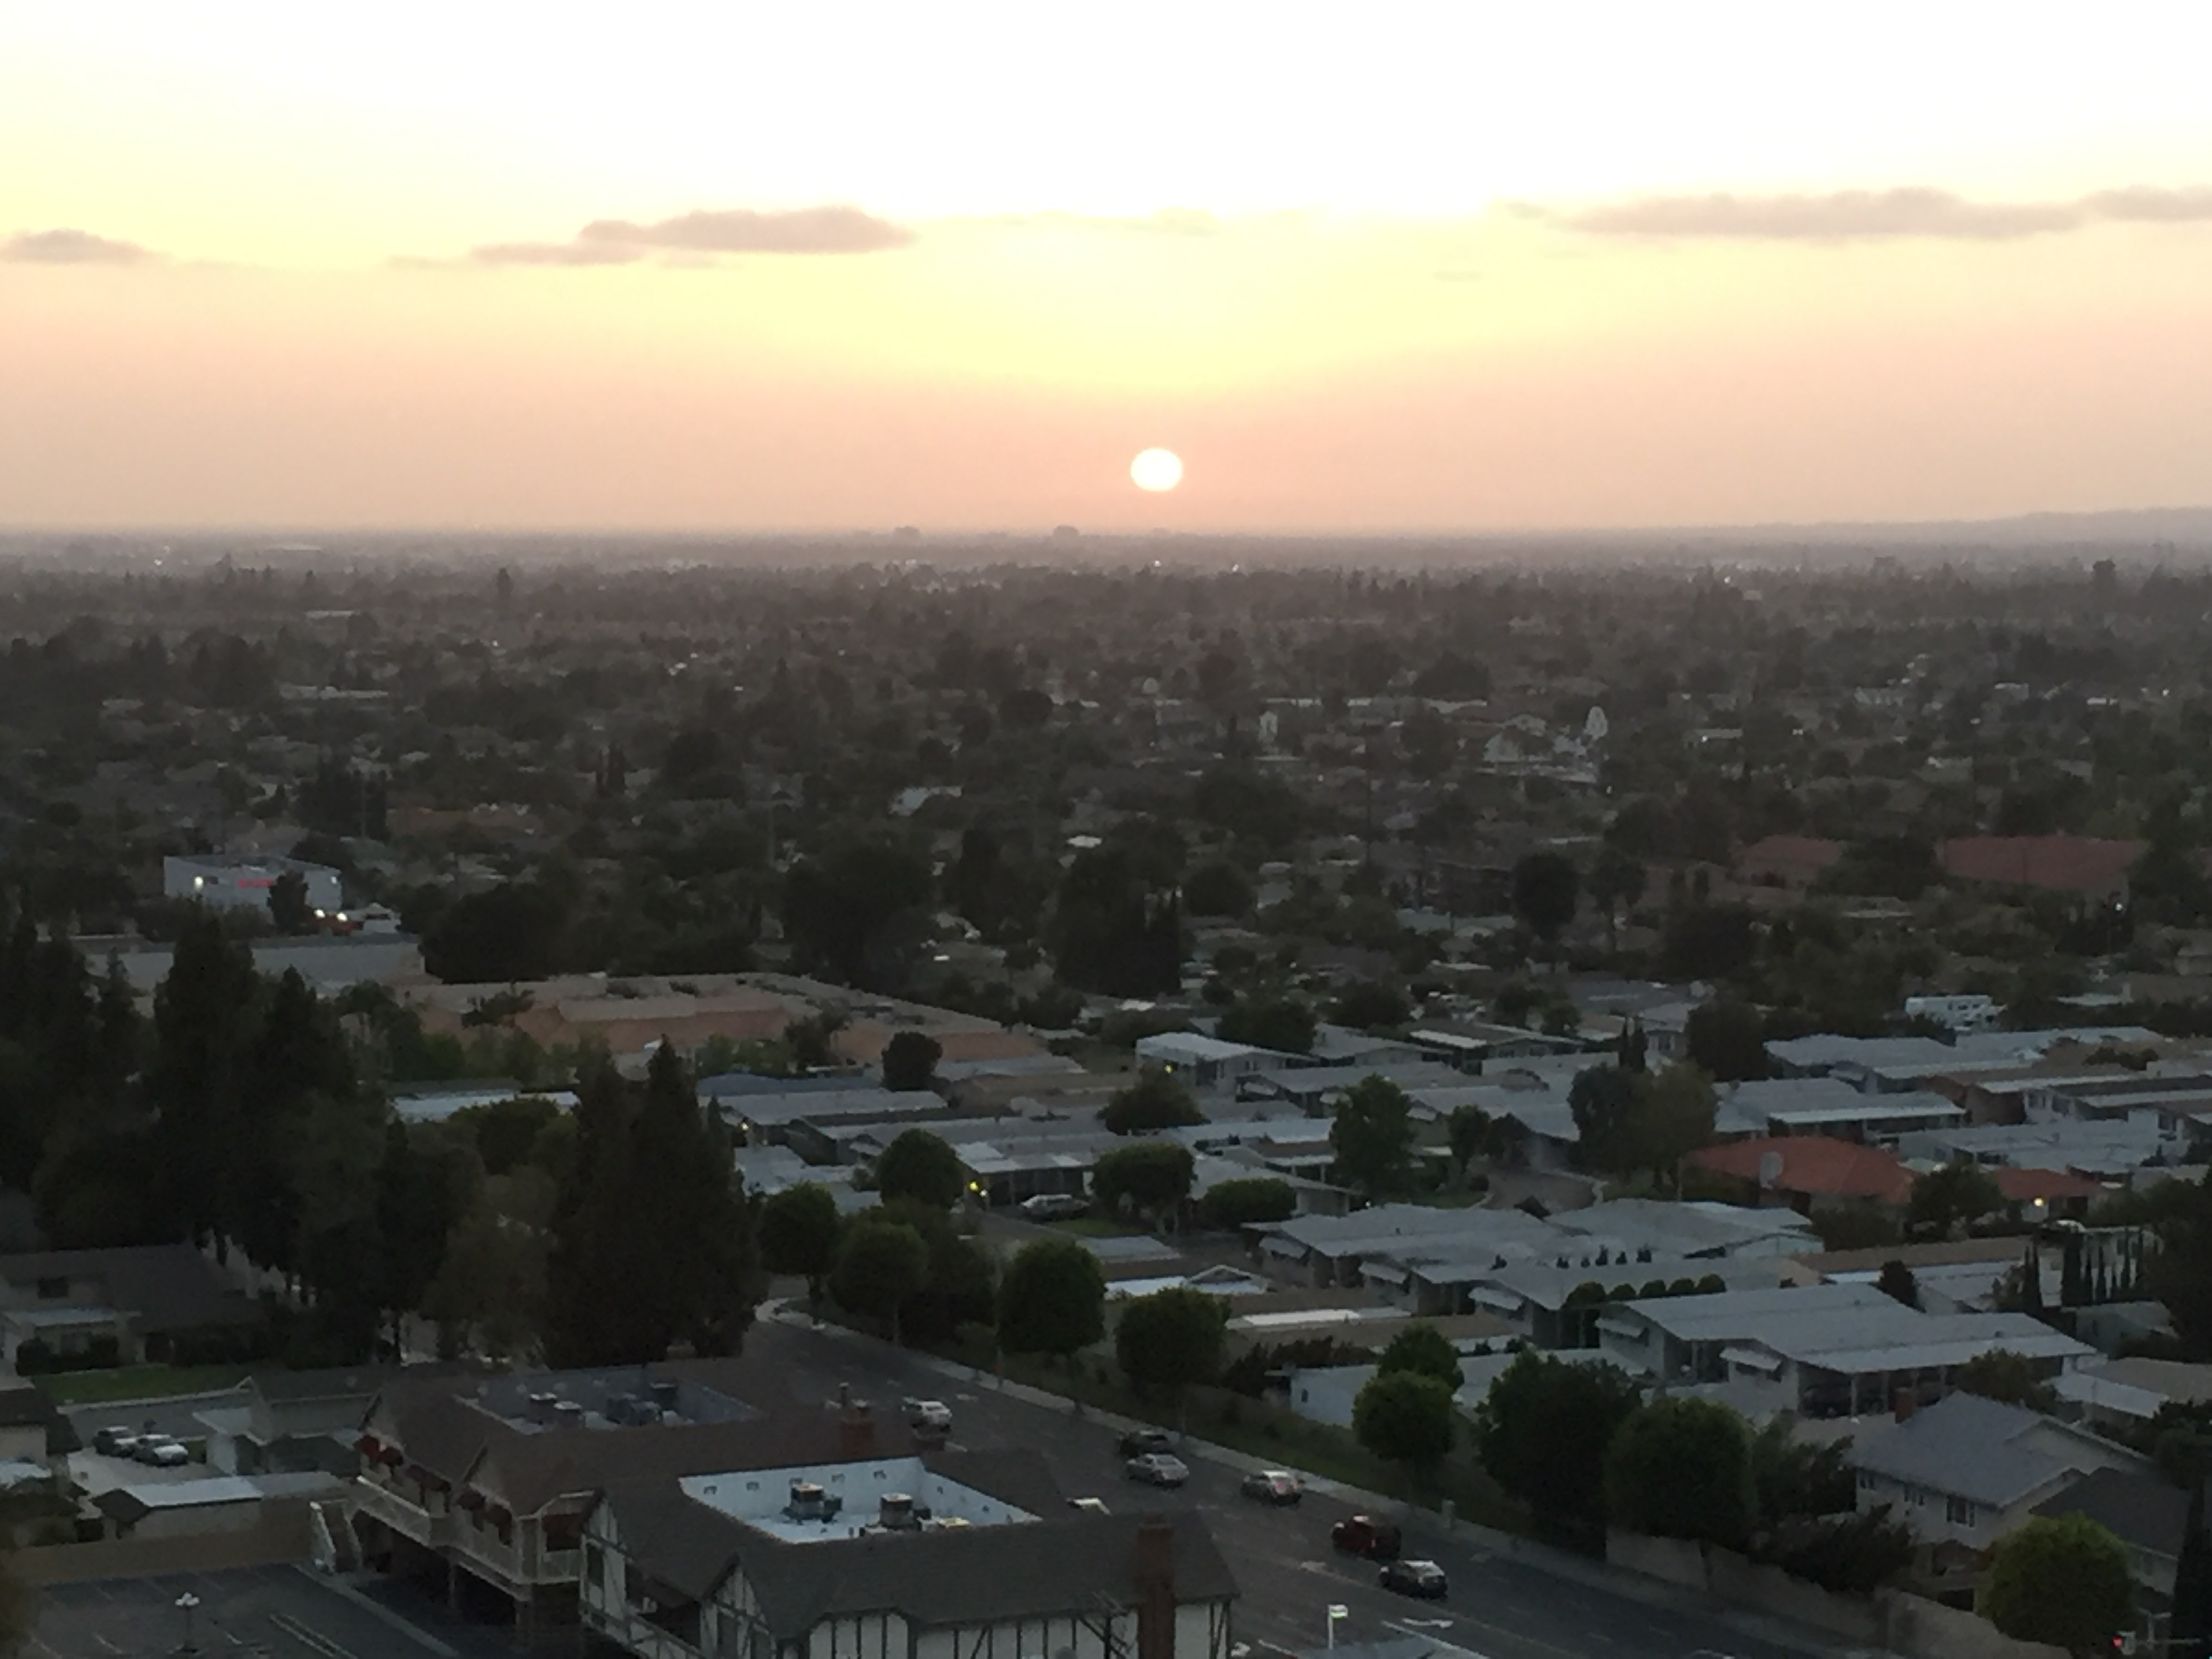 Sunset over Orange County